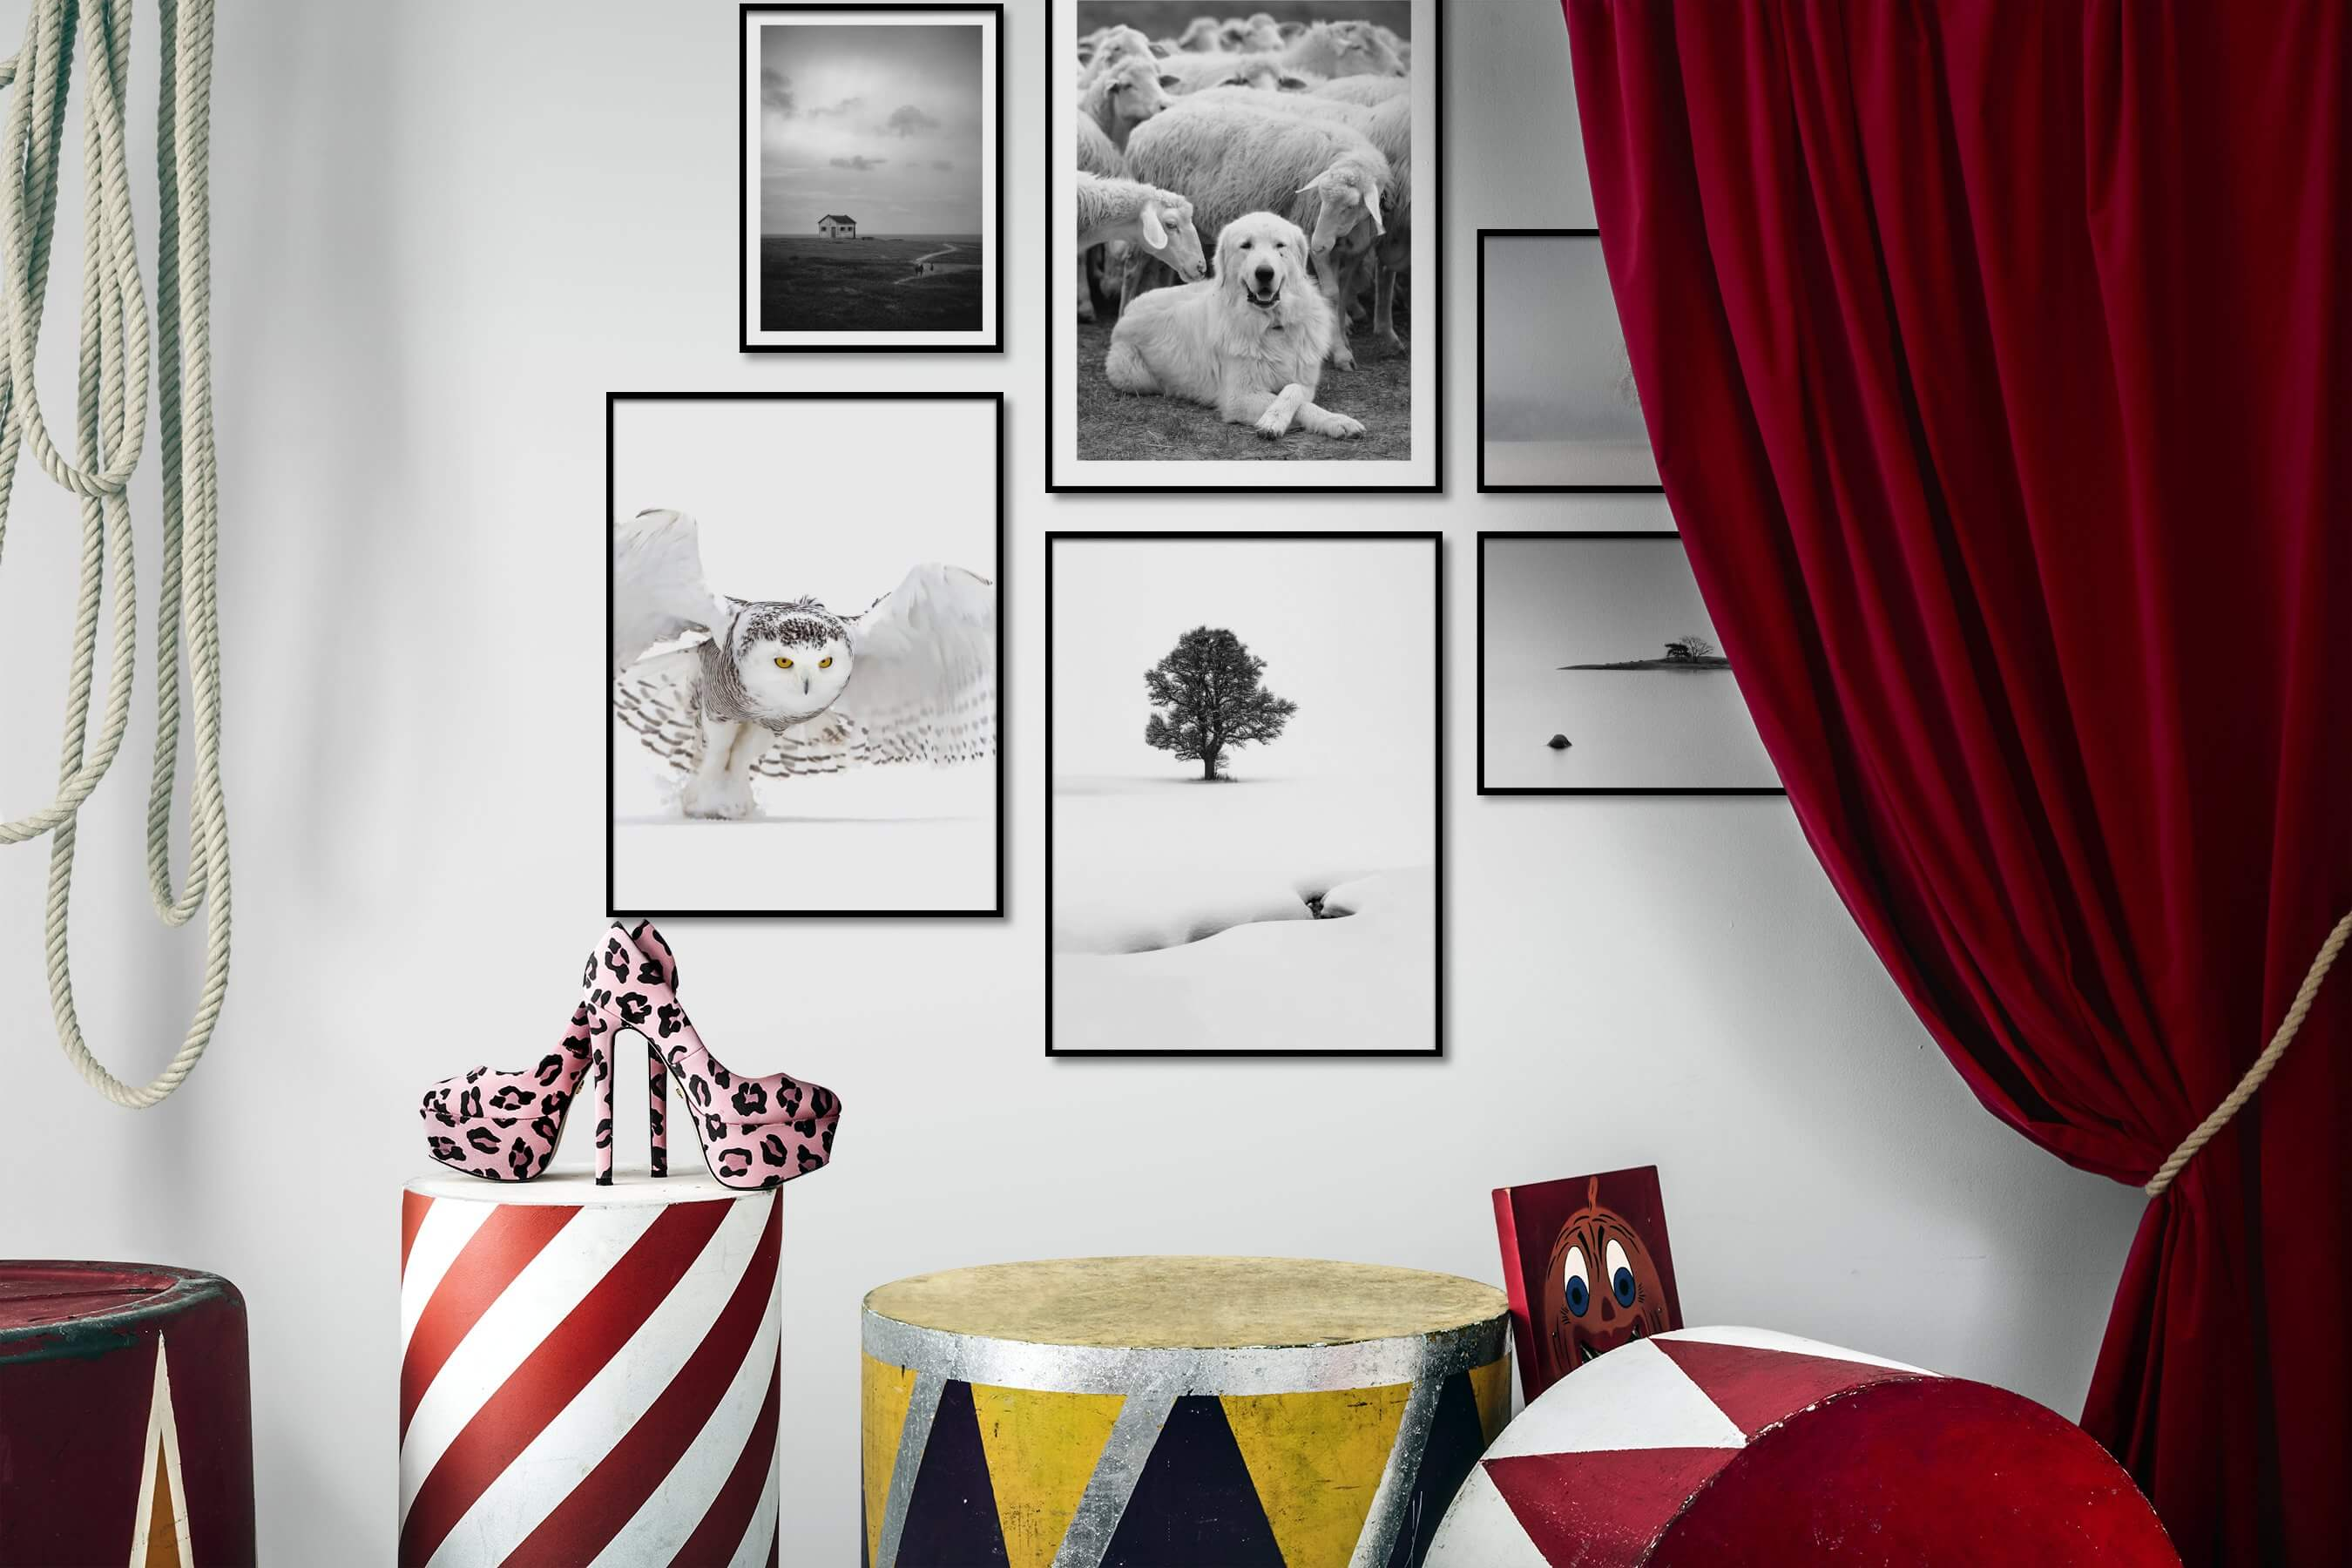 Gallery wall idea with six framed pictures arranged on a wall depicting Black & White, Country Life, Animals, Bright Tones, For the Minimalist, Nature, Beach & Water, and Mindfulness